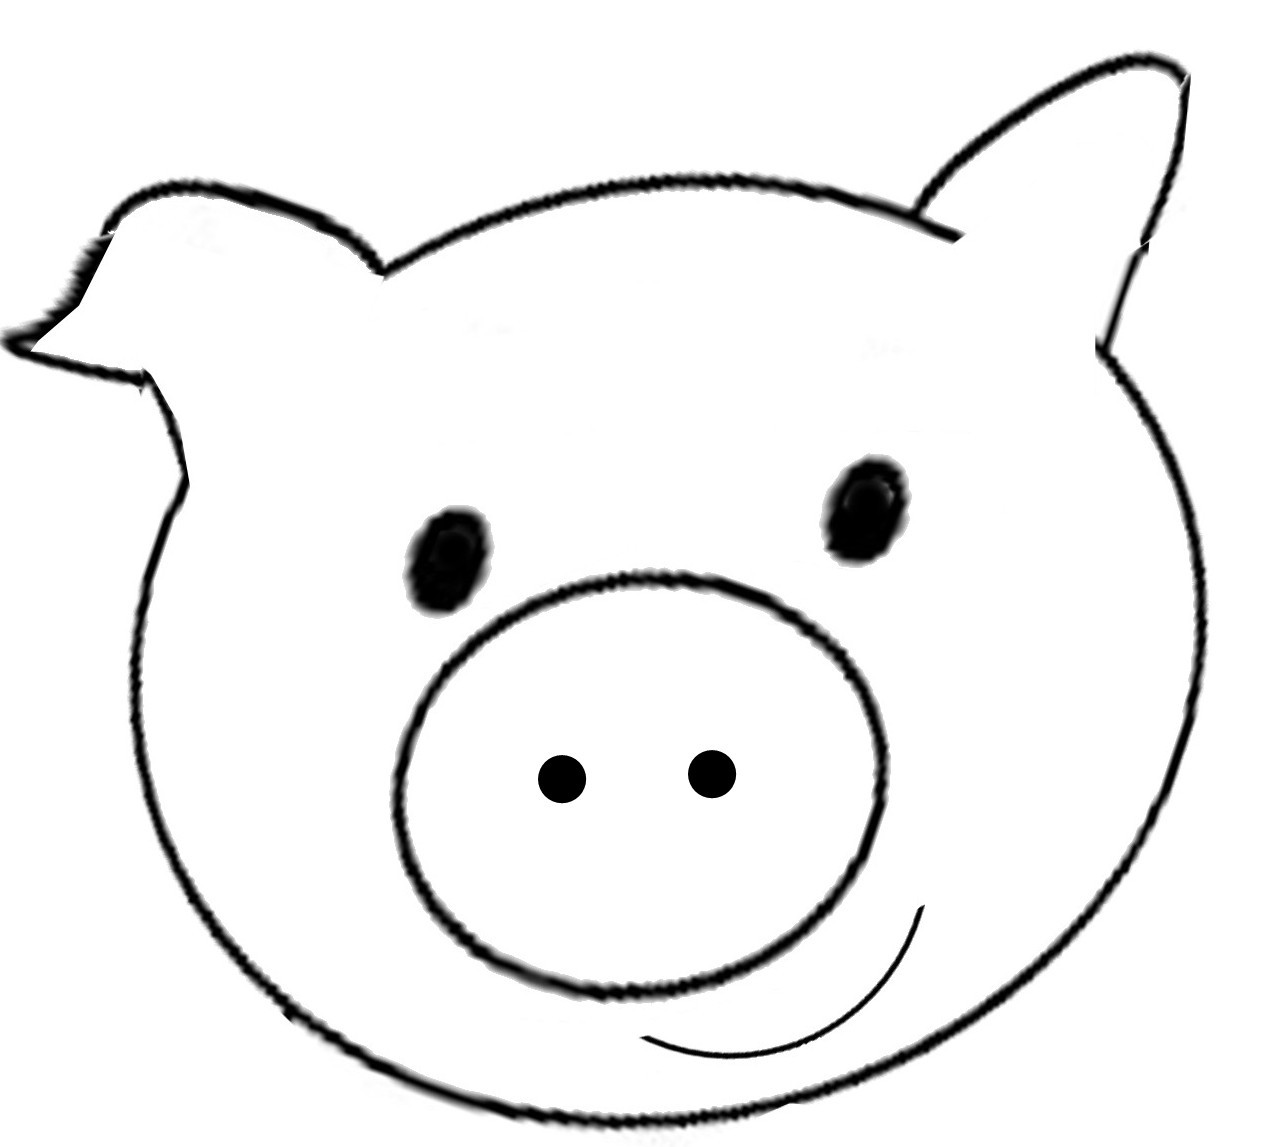 Preschool Coloring Sheets For The 3 Little Pigs Paper Plate Pig  Kid a fy a Shrunken Sweater with the power of felt